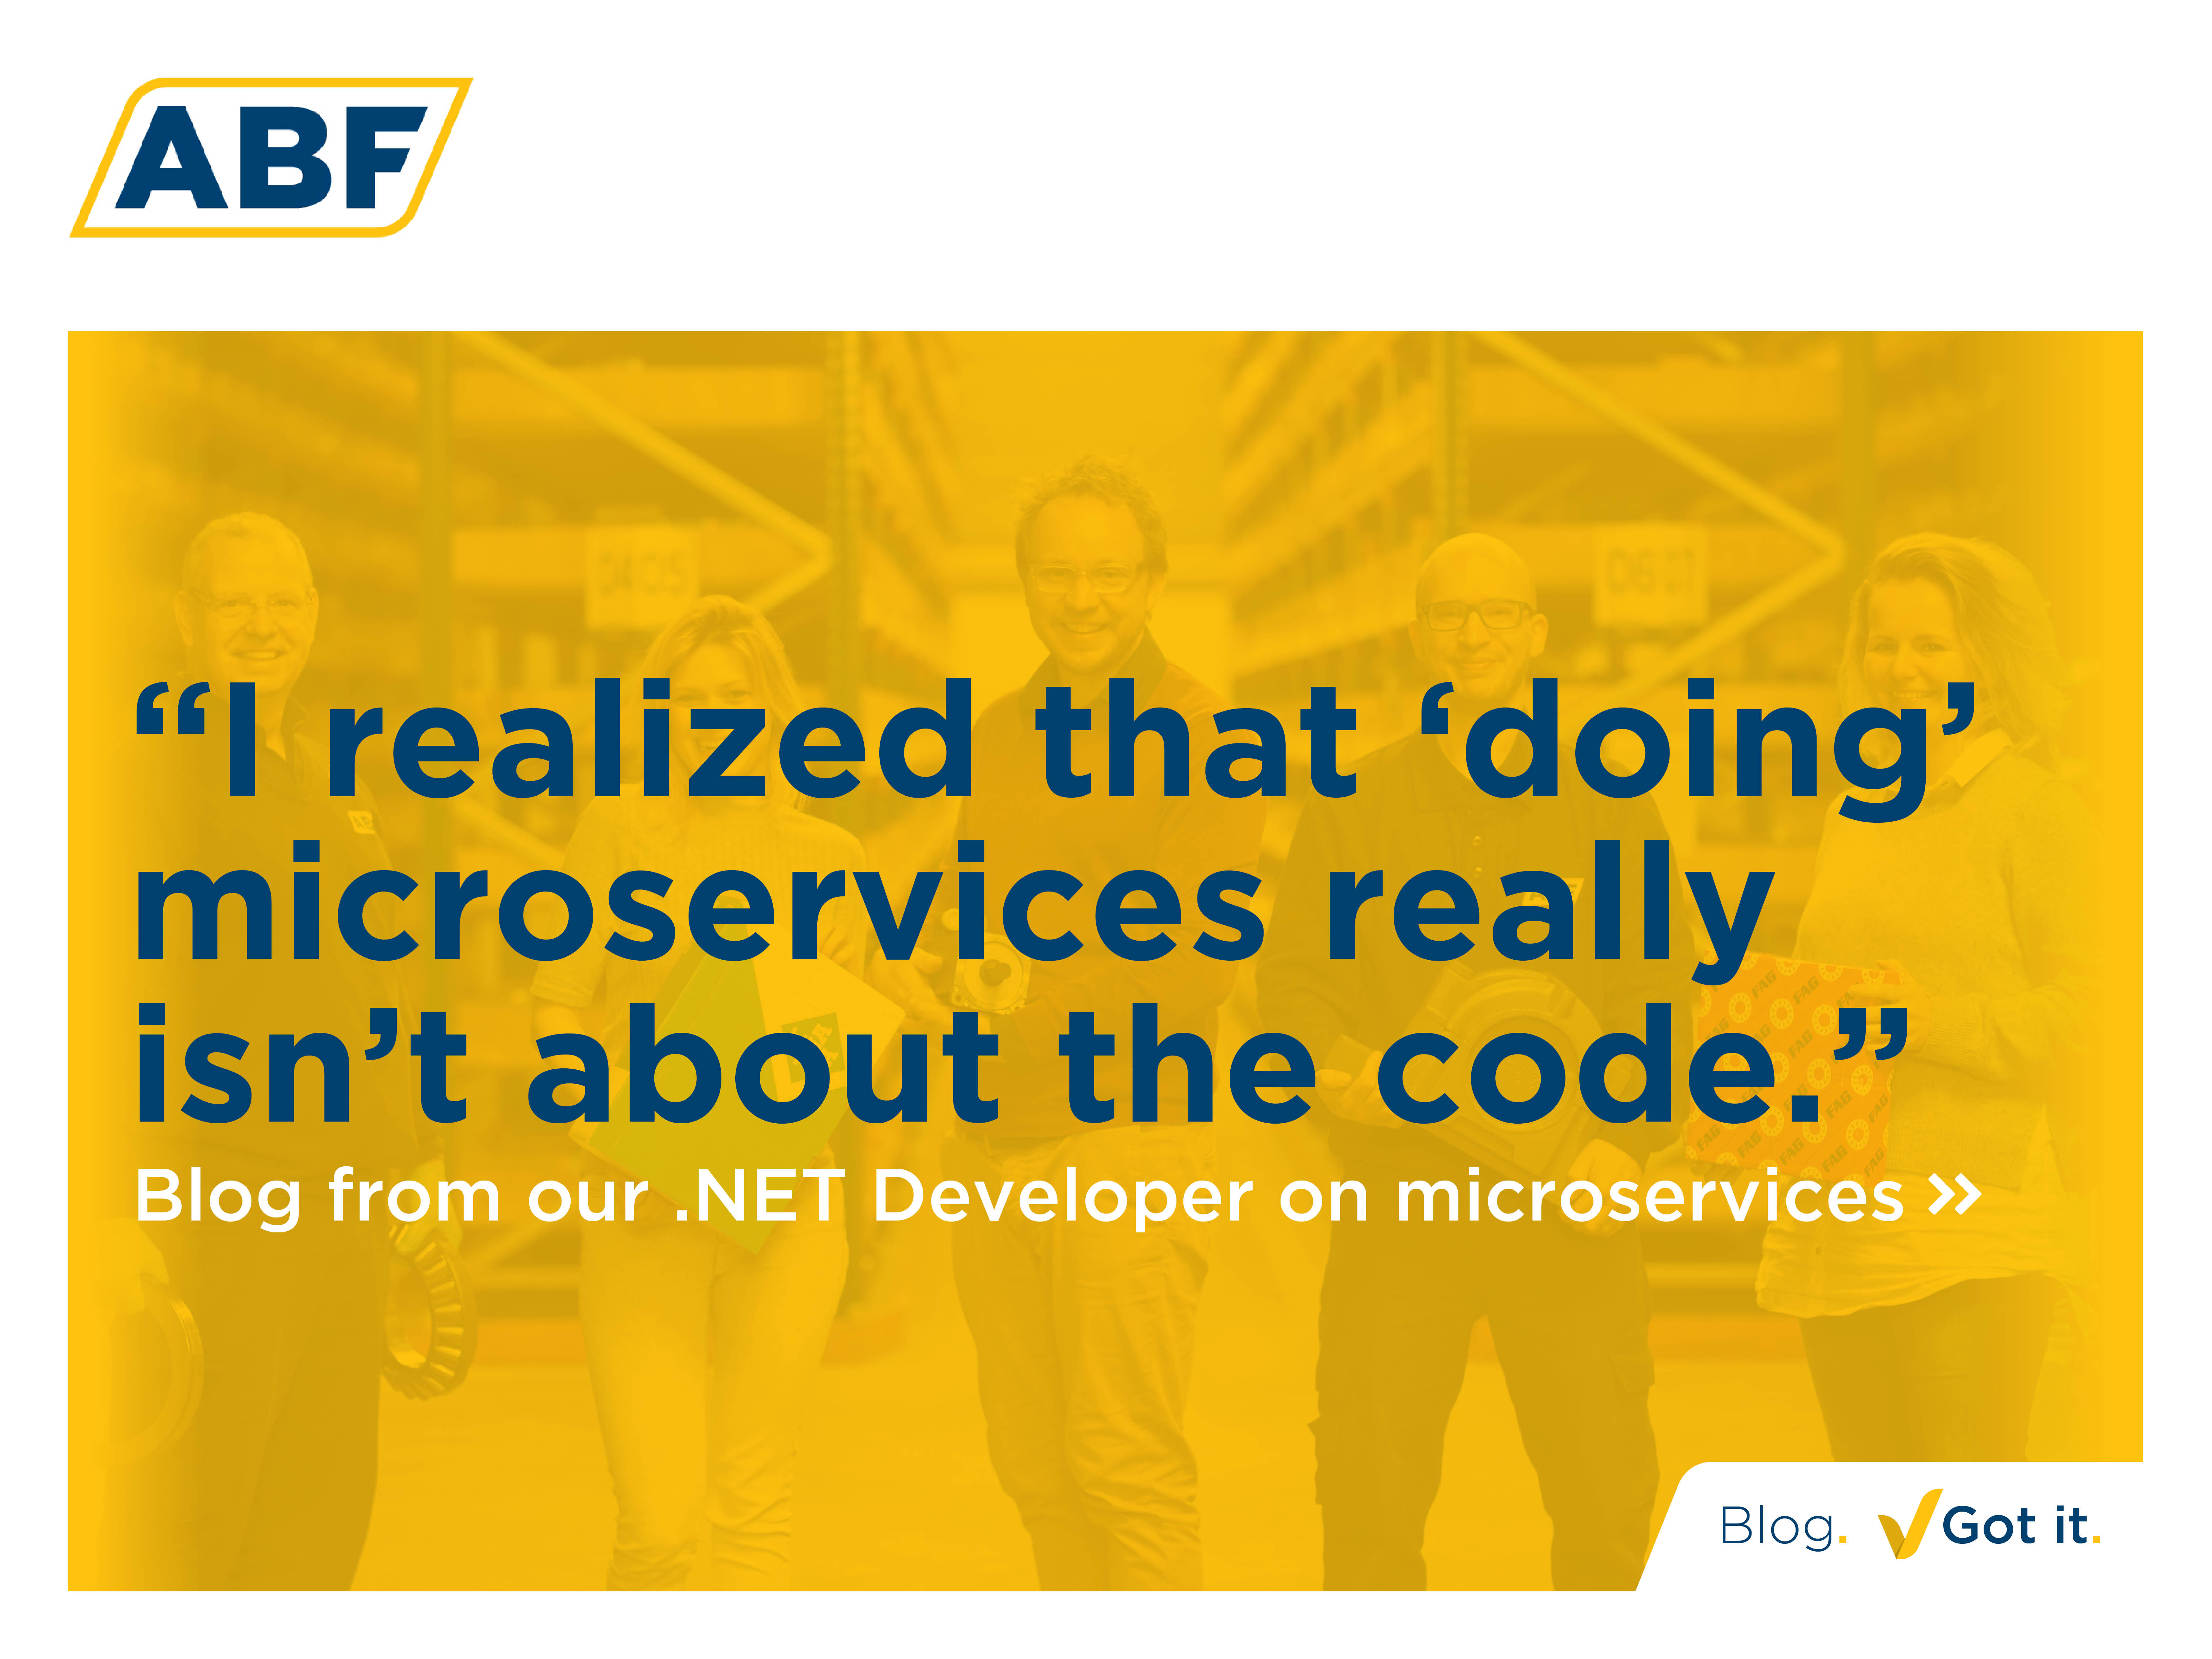 image blog microservices NDC oslo